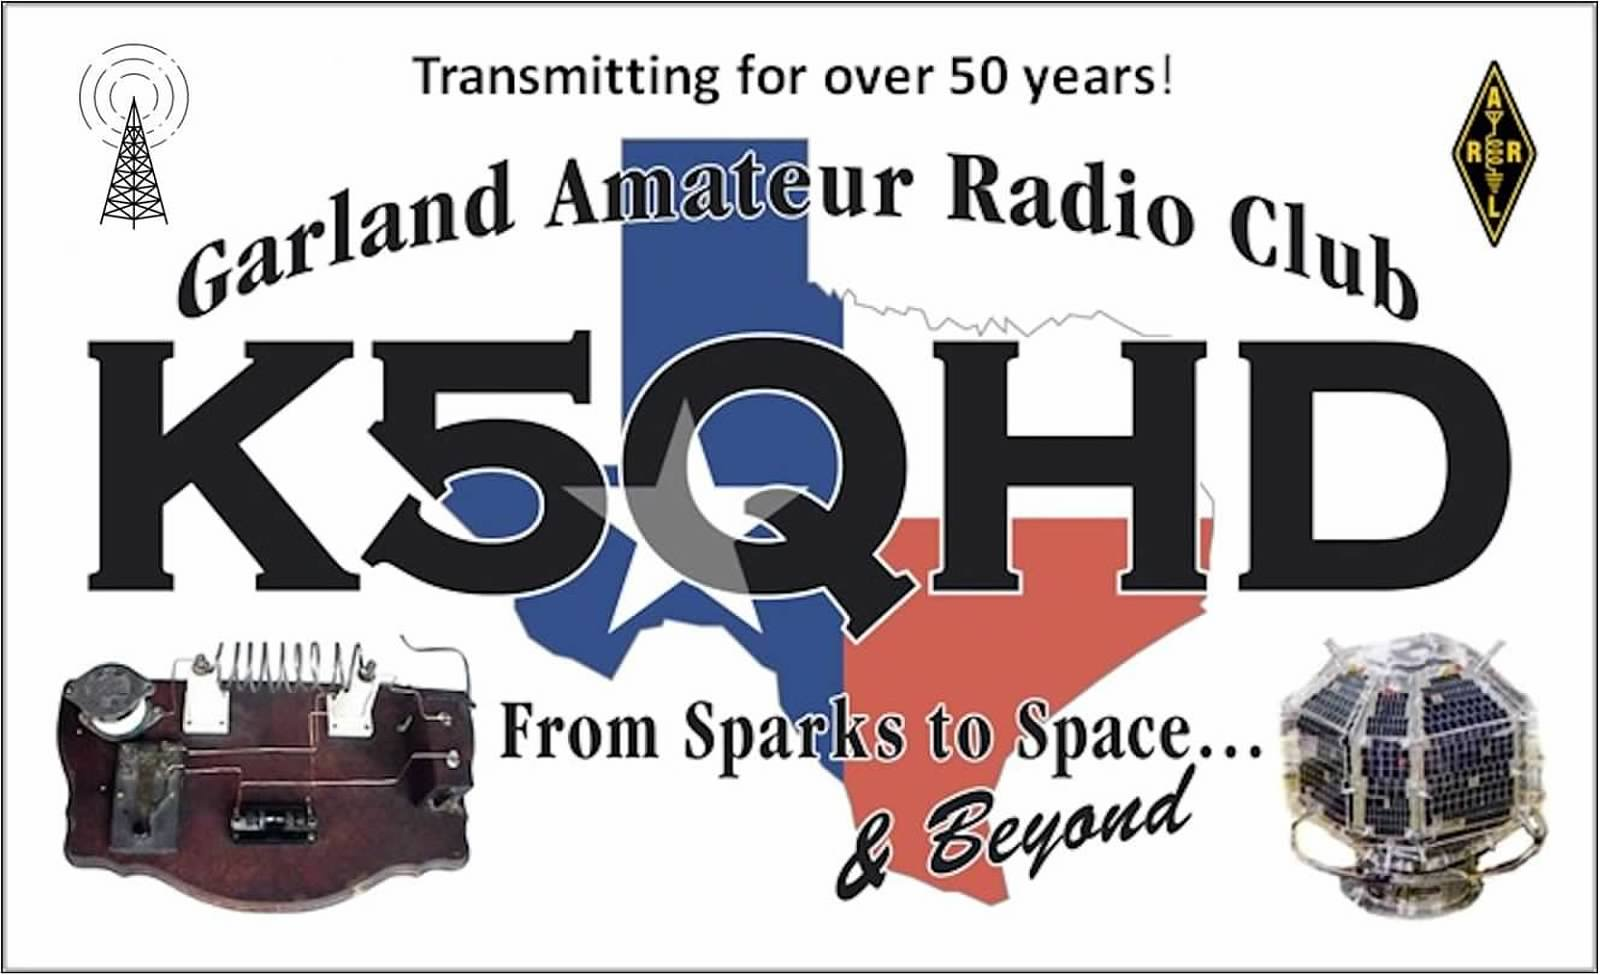 Garland Amateur Radio Club